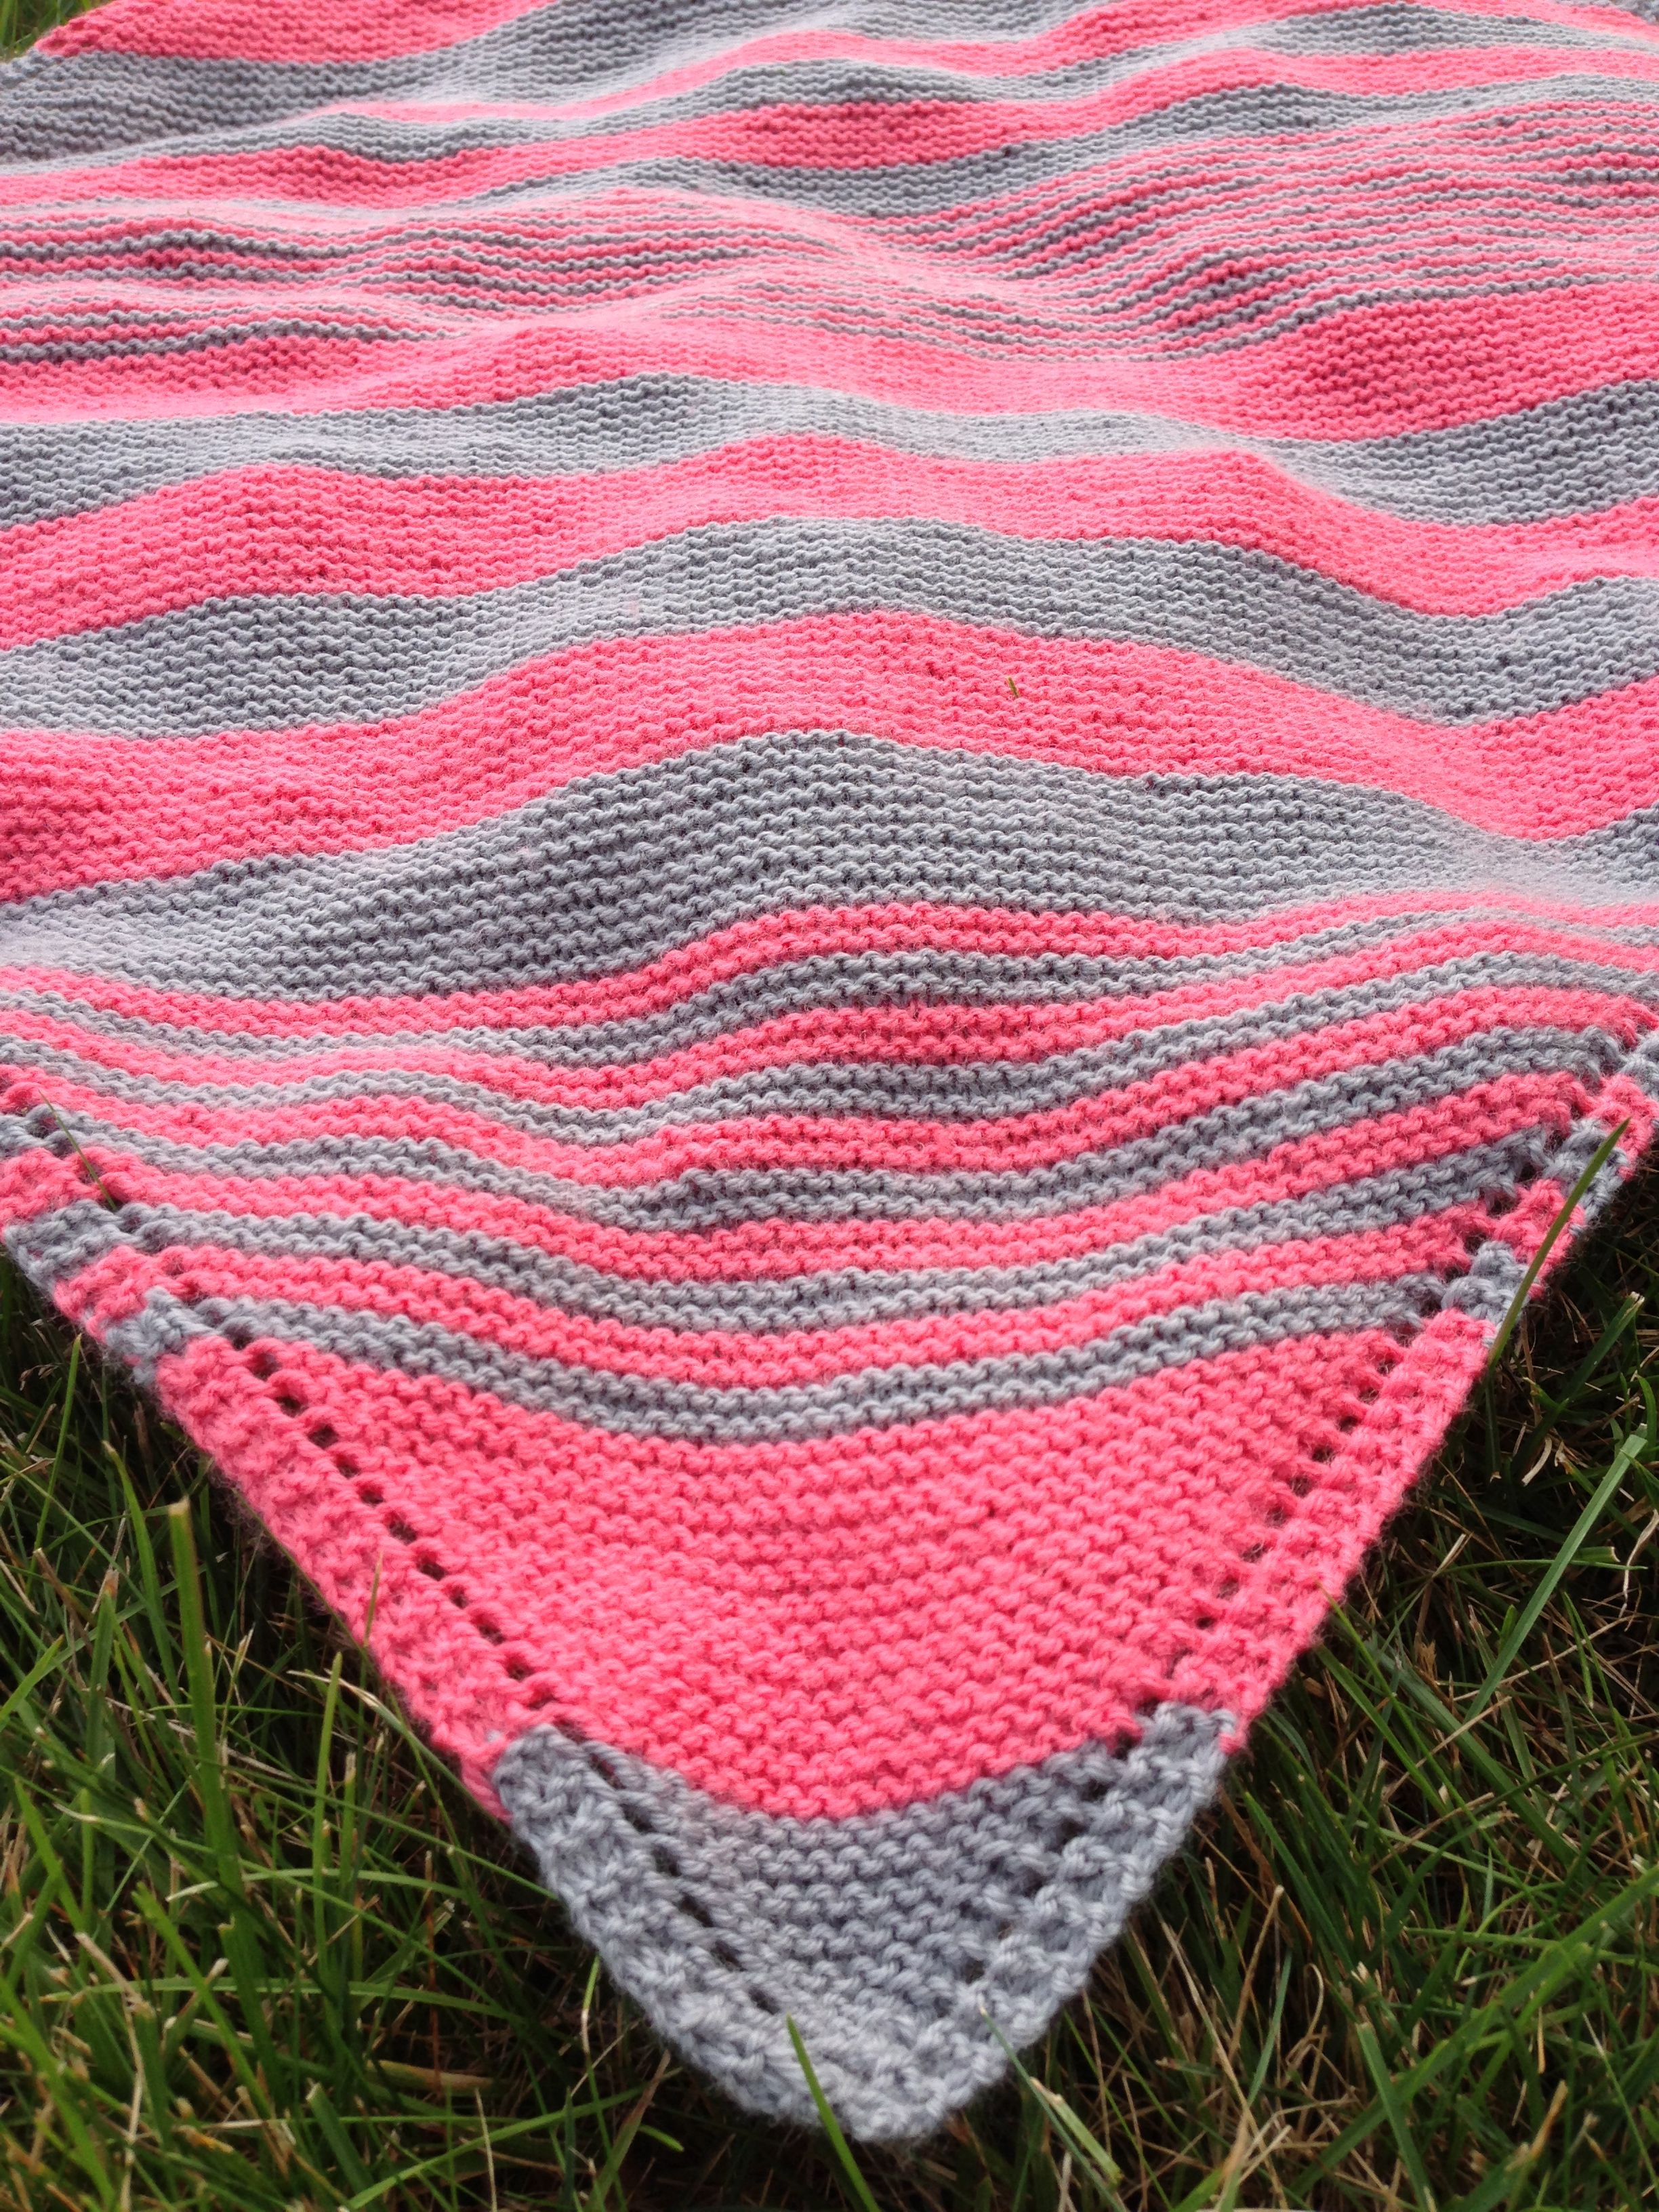 Striped Baby Blanket Knitting Pattern : Striped baby blanket #knitting Knit Pinterest